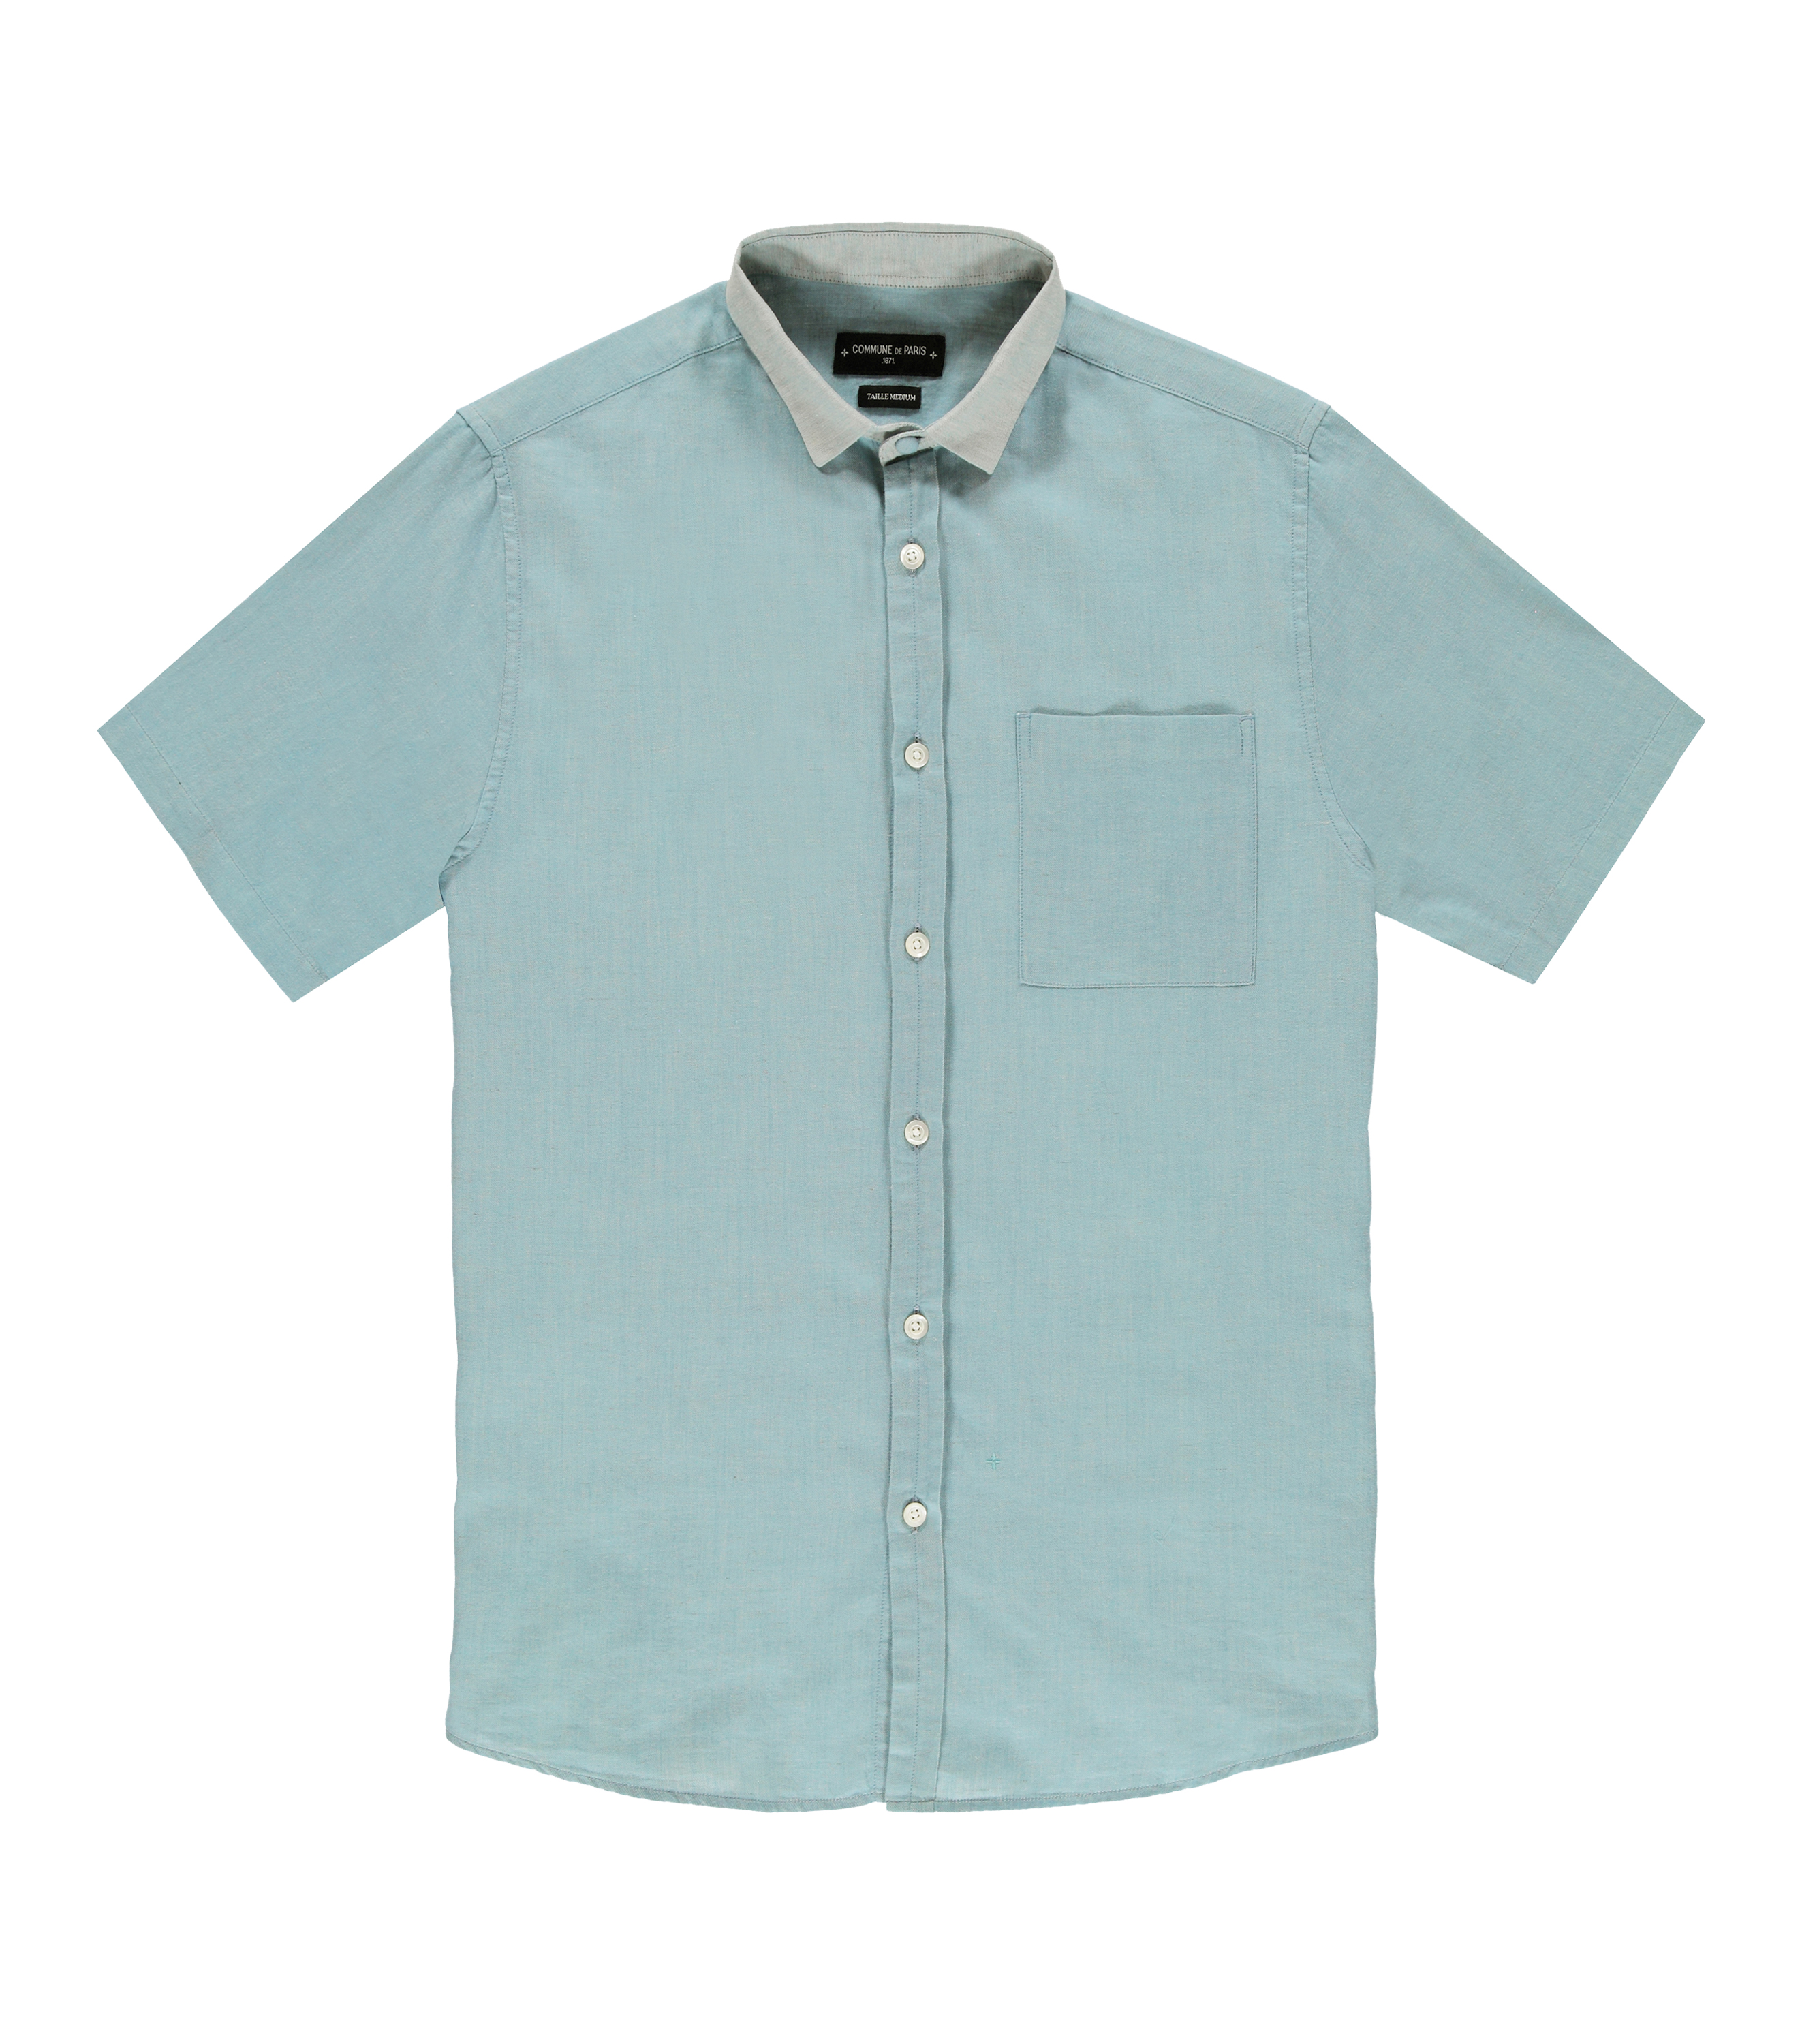 Shirt Dimitrieff 02 - Turquoise